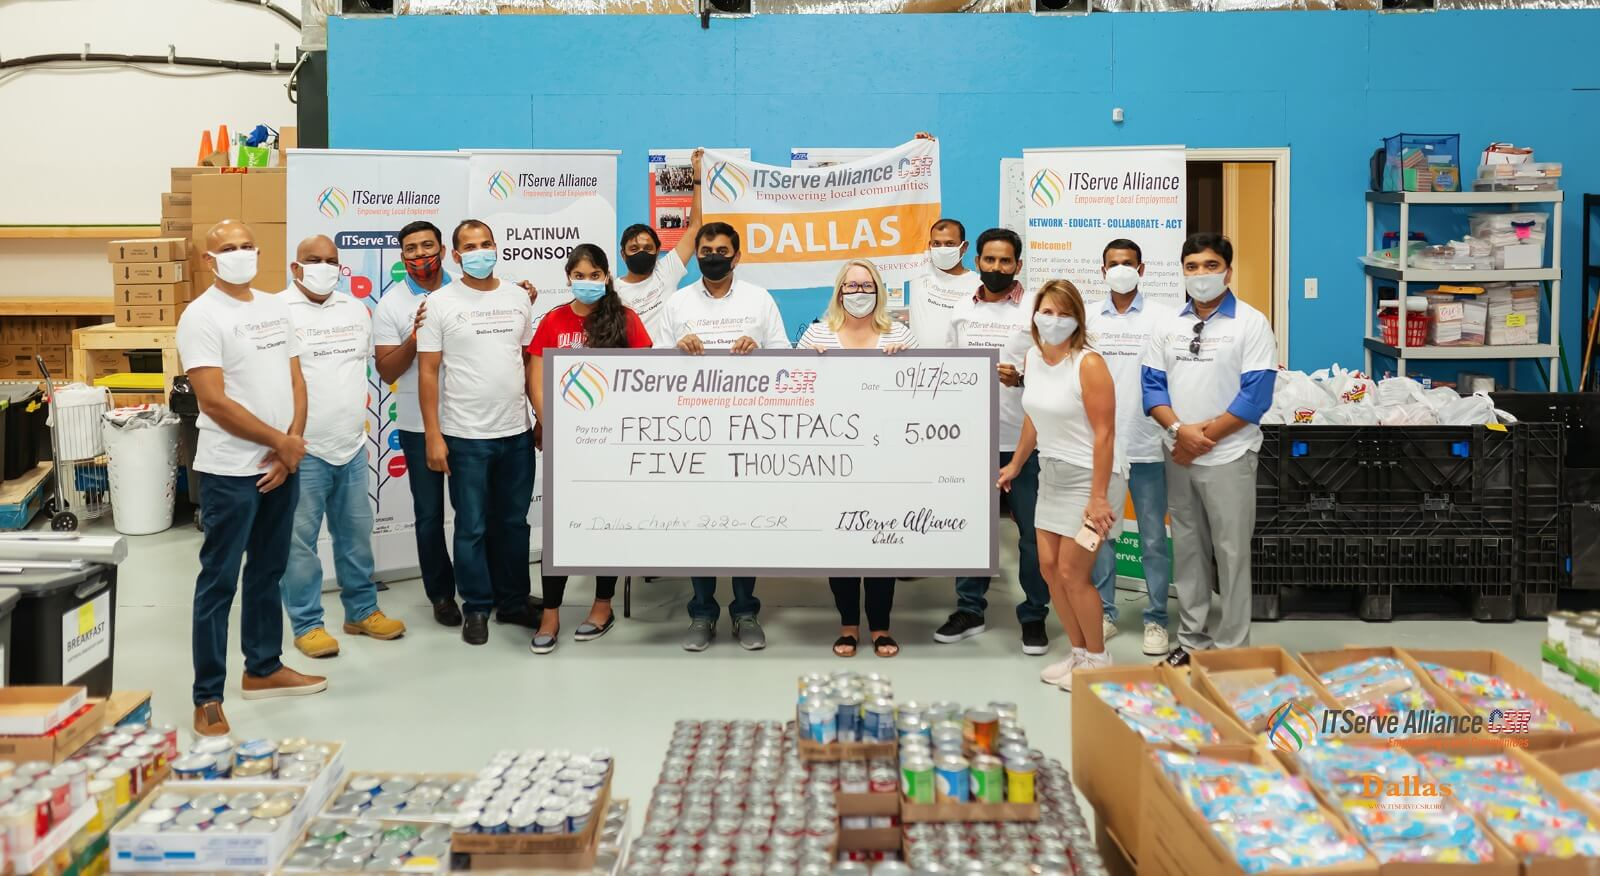 Donated $5,000 to Frisco Fastpacs to feed hungry school-going children